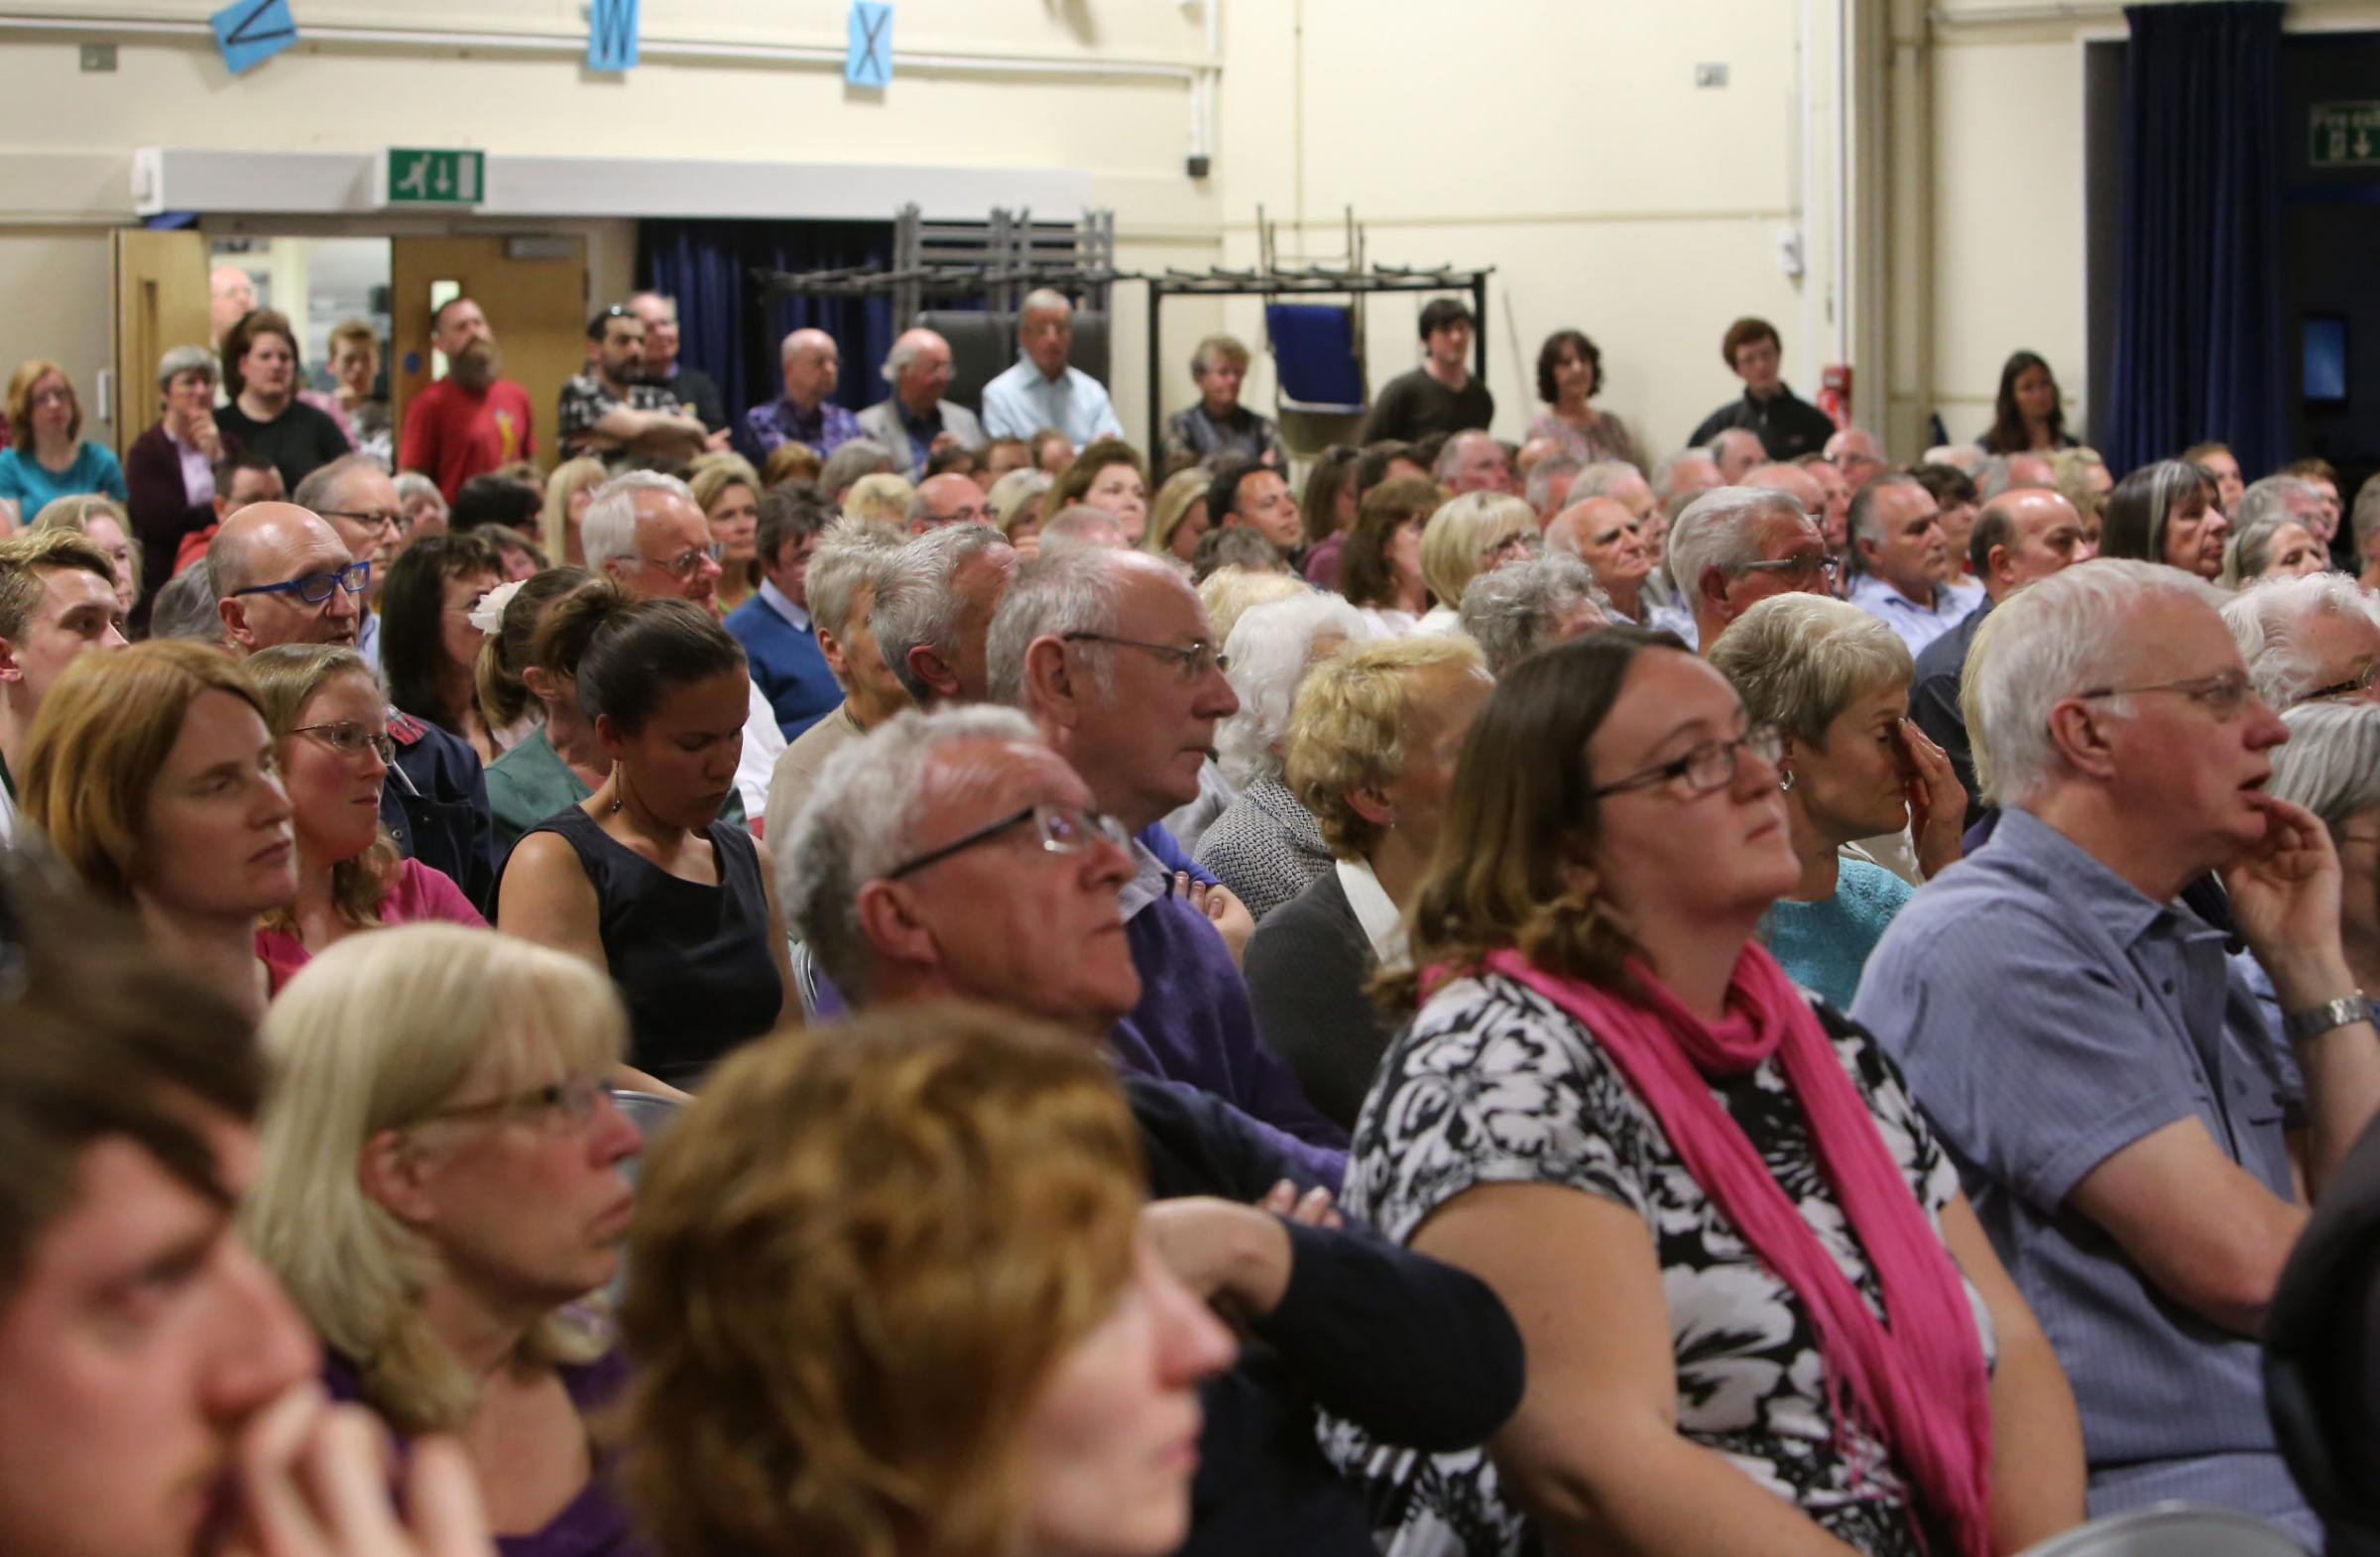 General Election hustings taking place in Dorset